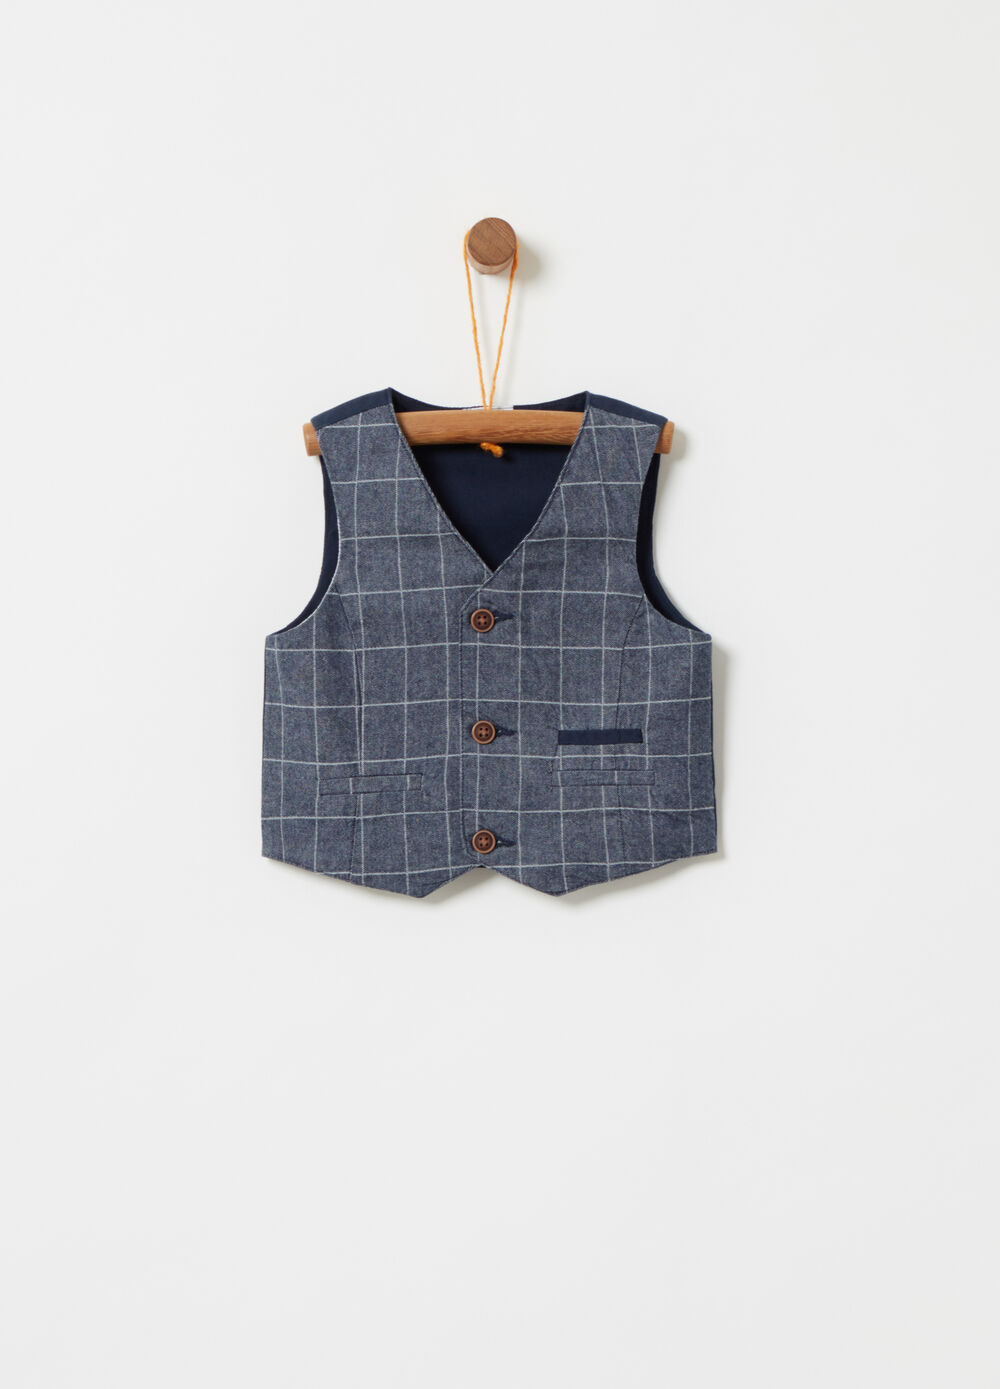 100% cotton gilet with check pattern on the front